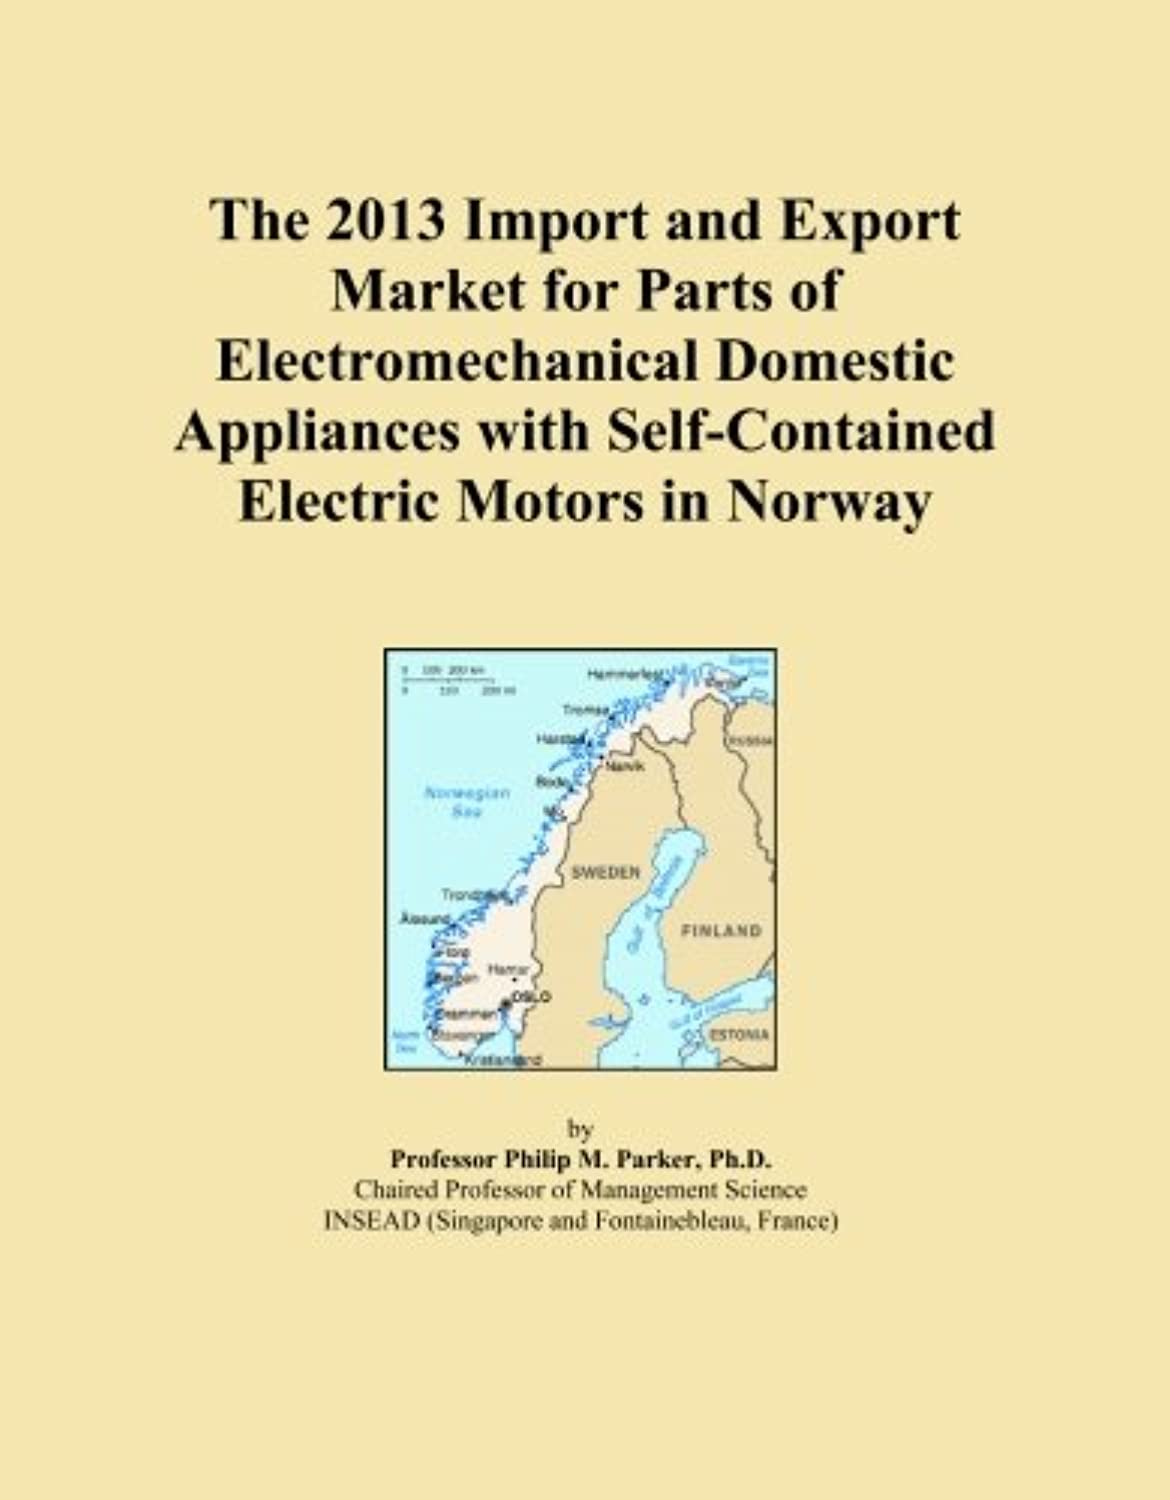 The 2013 Import and Export Market for Parts of Electromechanical Domestic Appliances with Self-Contained Electric Motors in Norway